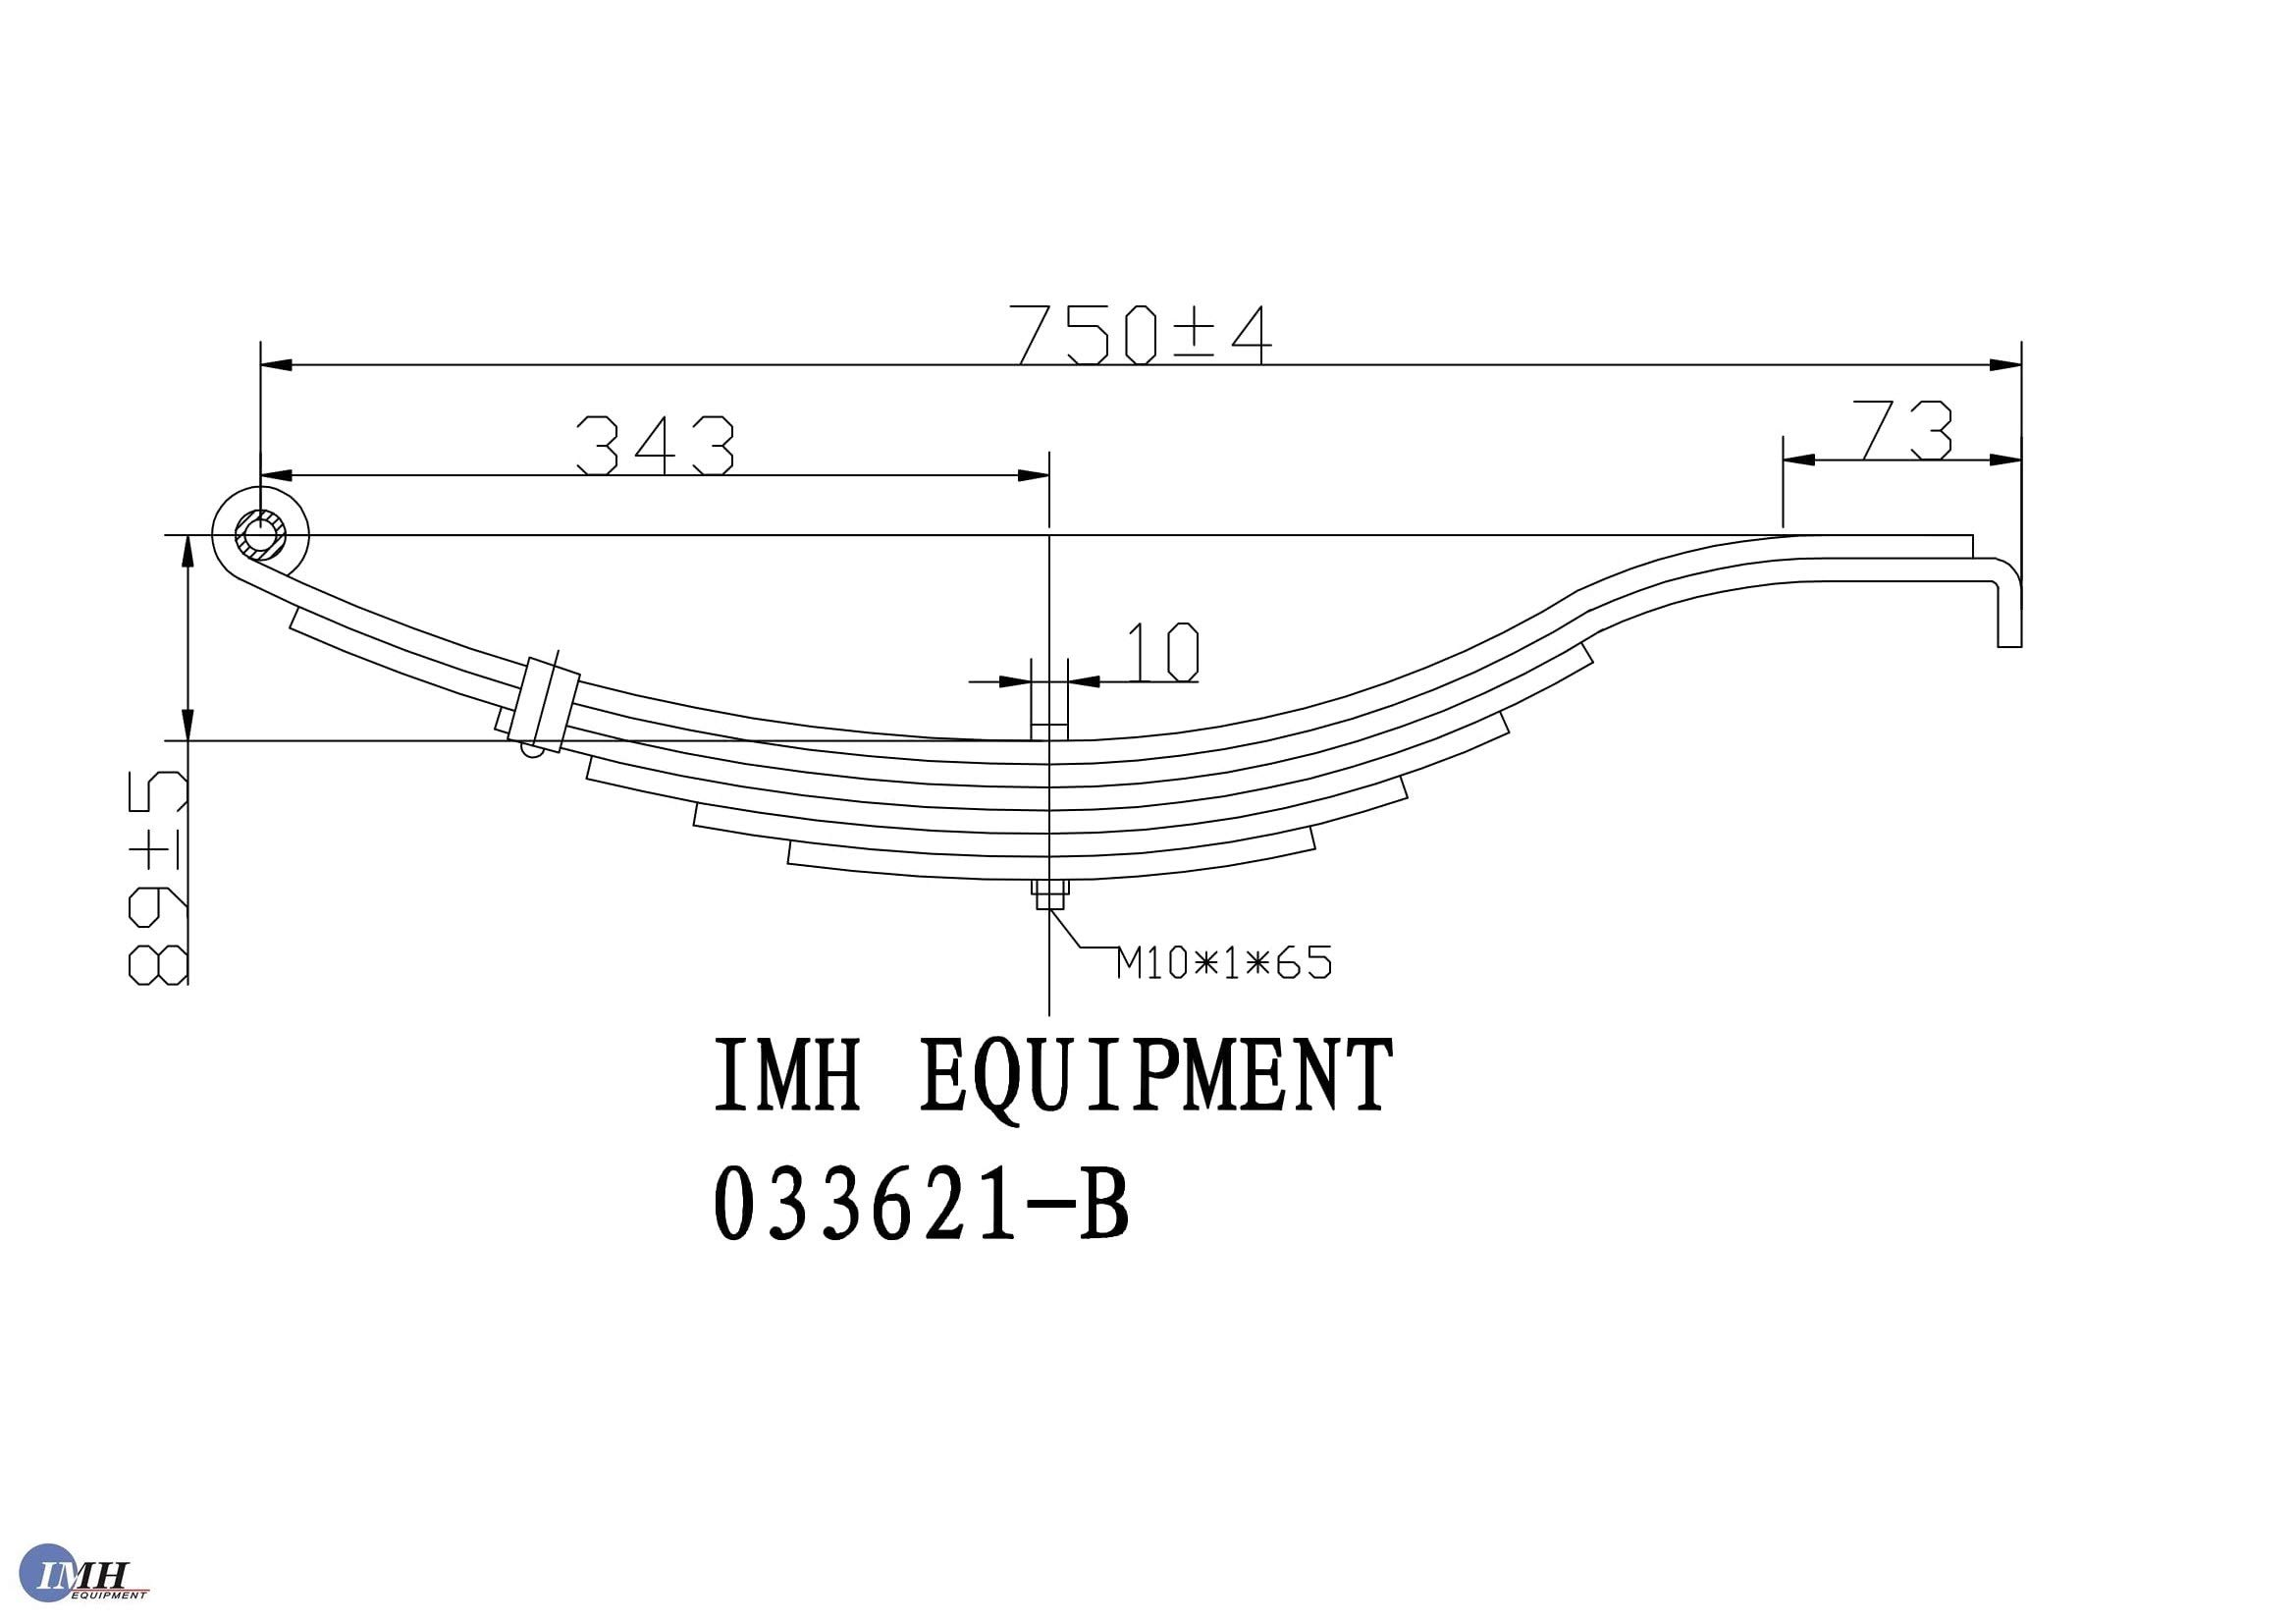 Trailer Leaf Spring- Slipper 6 Leaf, 4000lbs Capacity for 8000 Lbs Axles by IMH Equipment